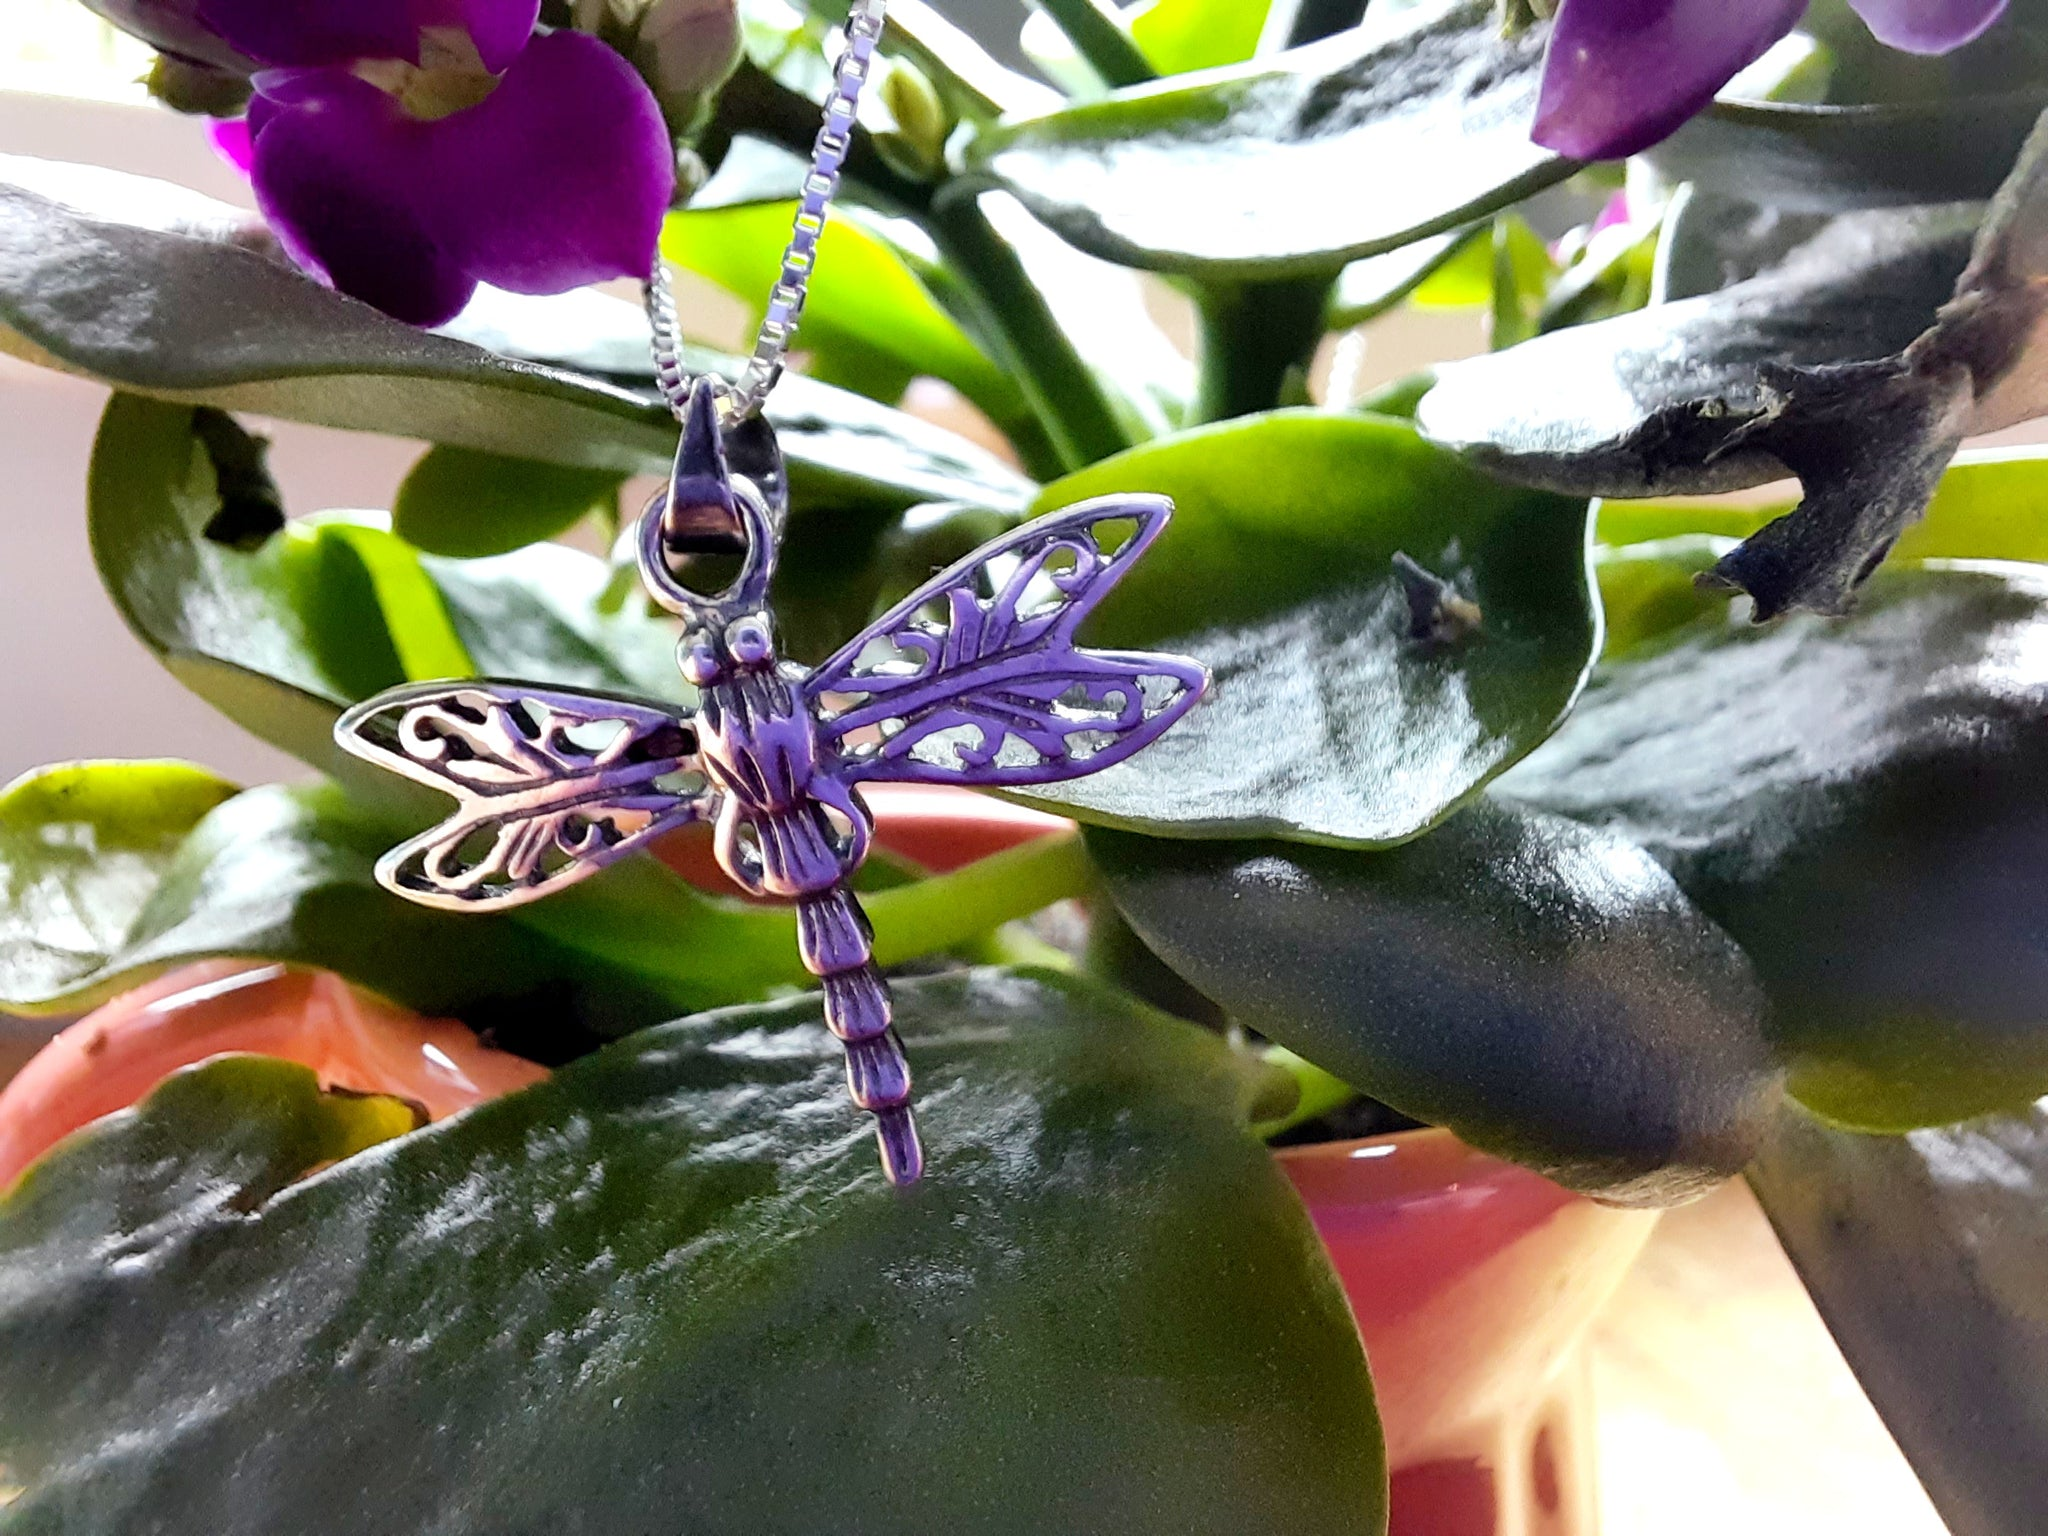 "Our sterling silver dragonfly pendant has pretty detail and the filigree design gives it a wonderful antique look. It is perched on a polished diamond cut sterling silver box chain (which through wear will dull).     Chain - 16-18"" with extender   Pendant size inc bale - 2.5cm x 2.5cm"